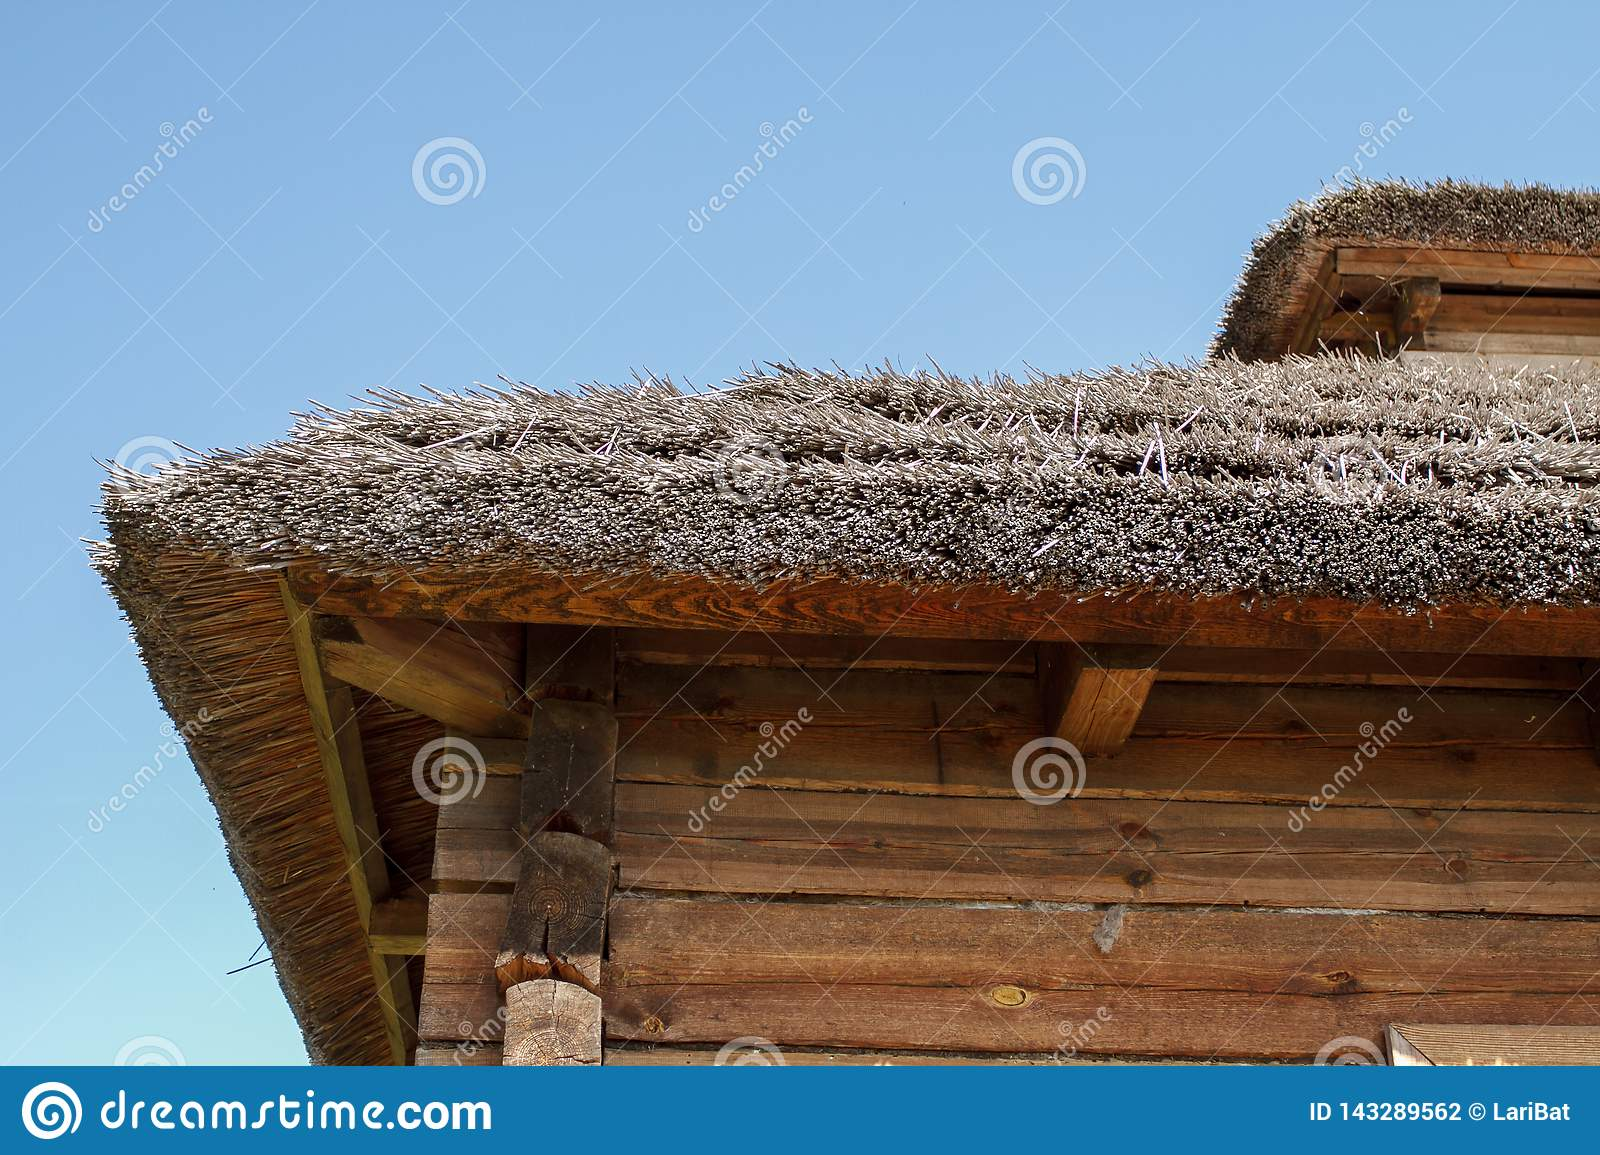 Thatched roof of a traditional Belarusian village house